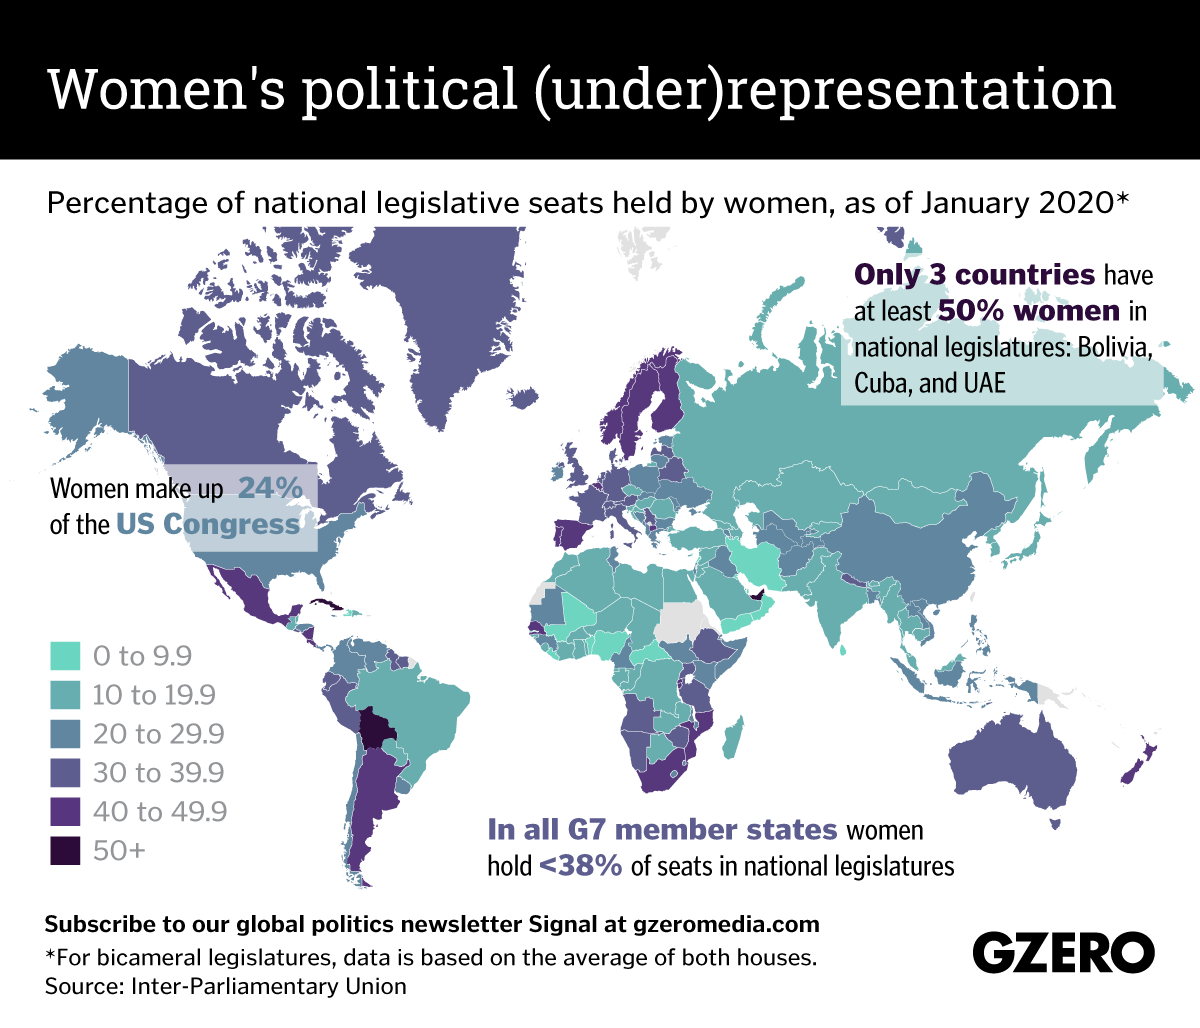 The Graphic Truth: Women's political (under)representation